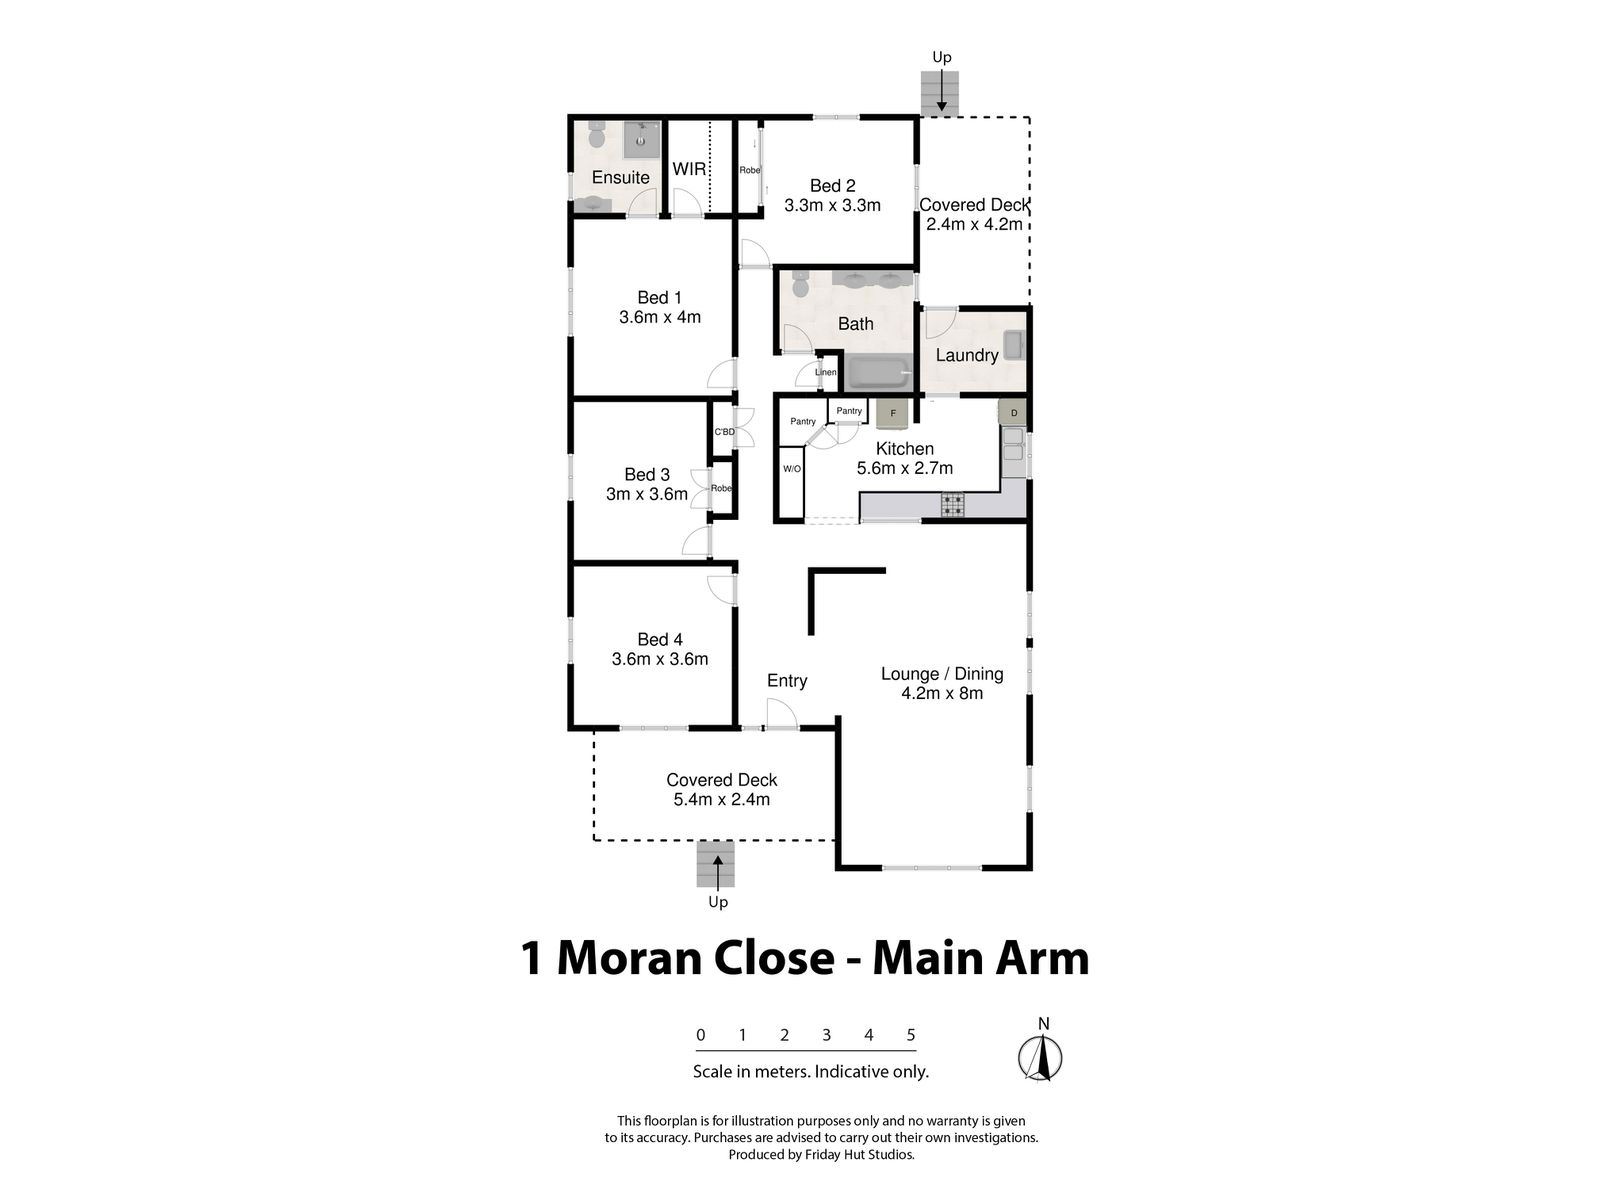 1 Moran Close, Main Arm